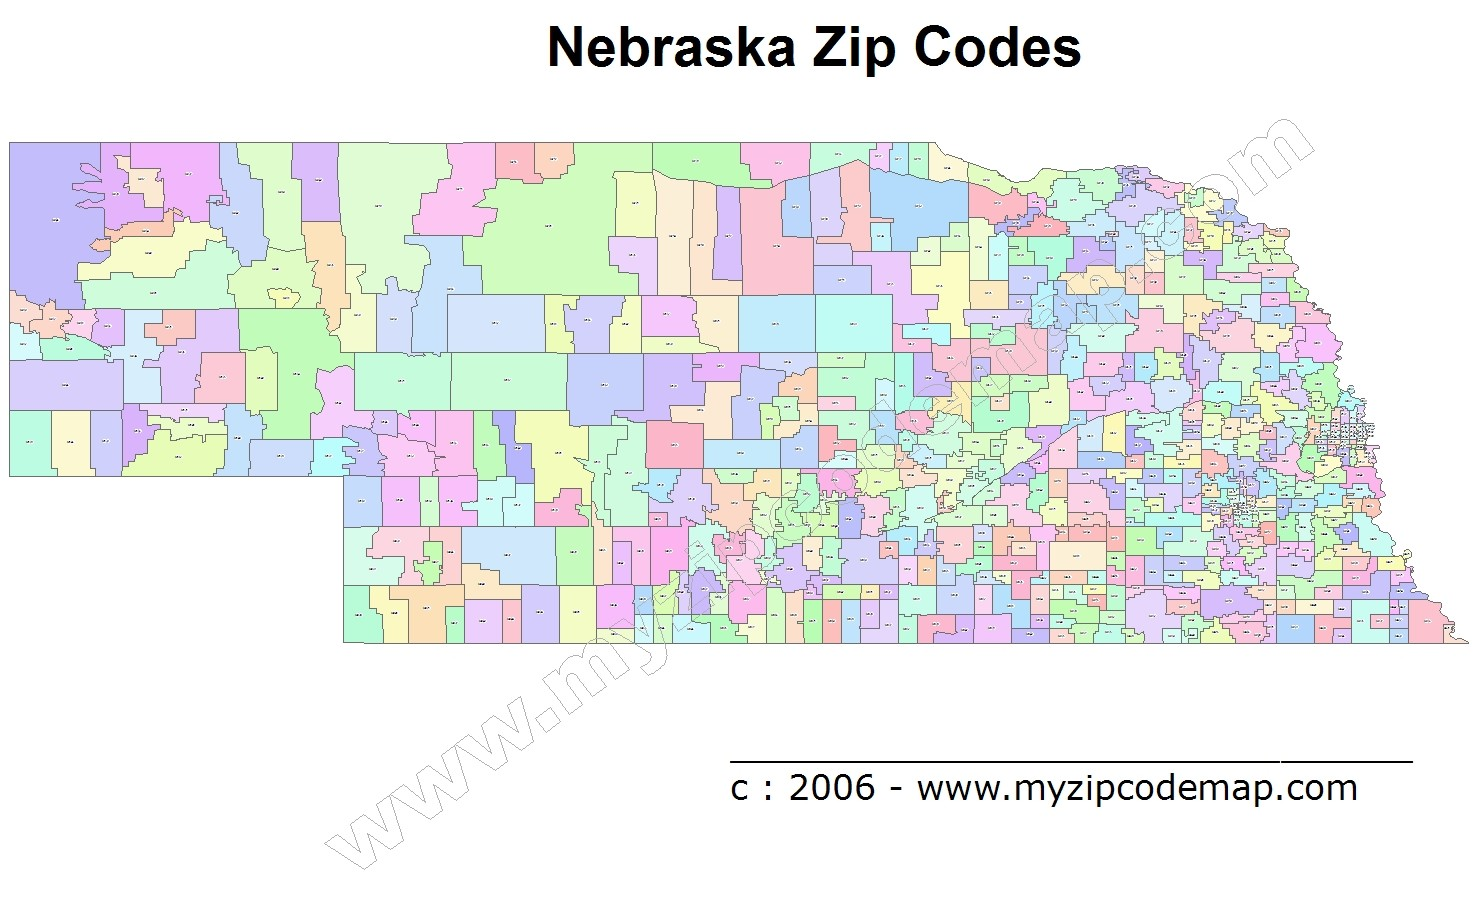 Nebraska (NE) Zip Code Map